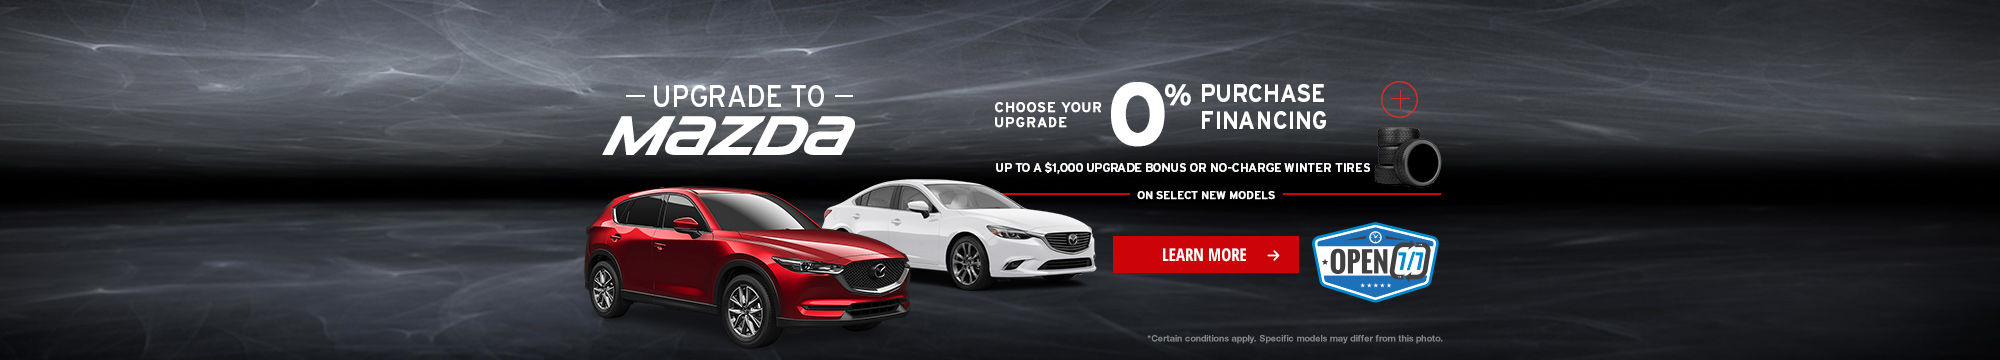 Upgrade to Mazda Event